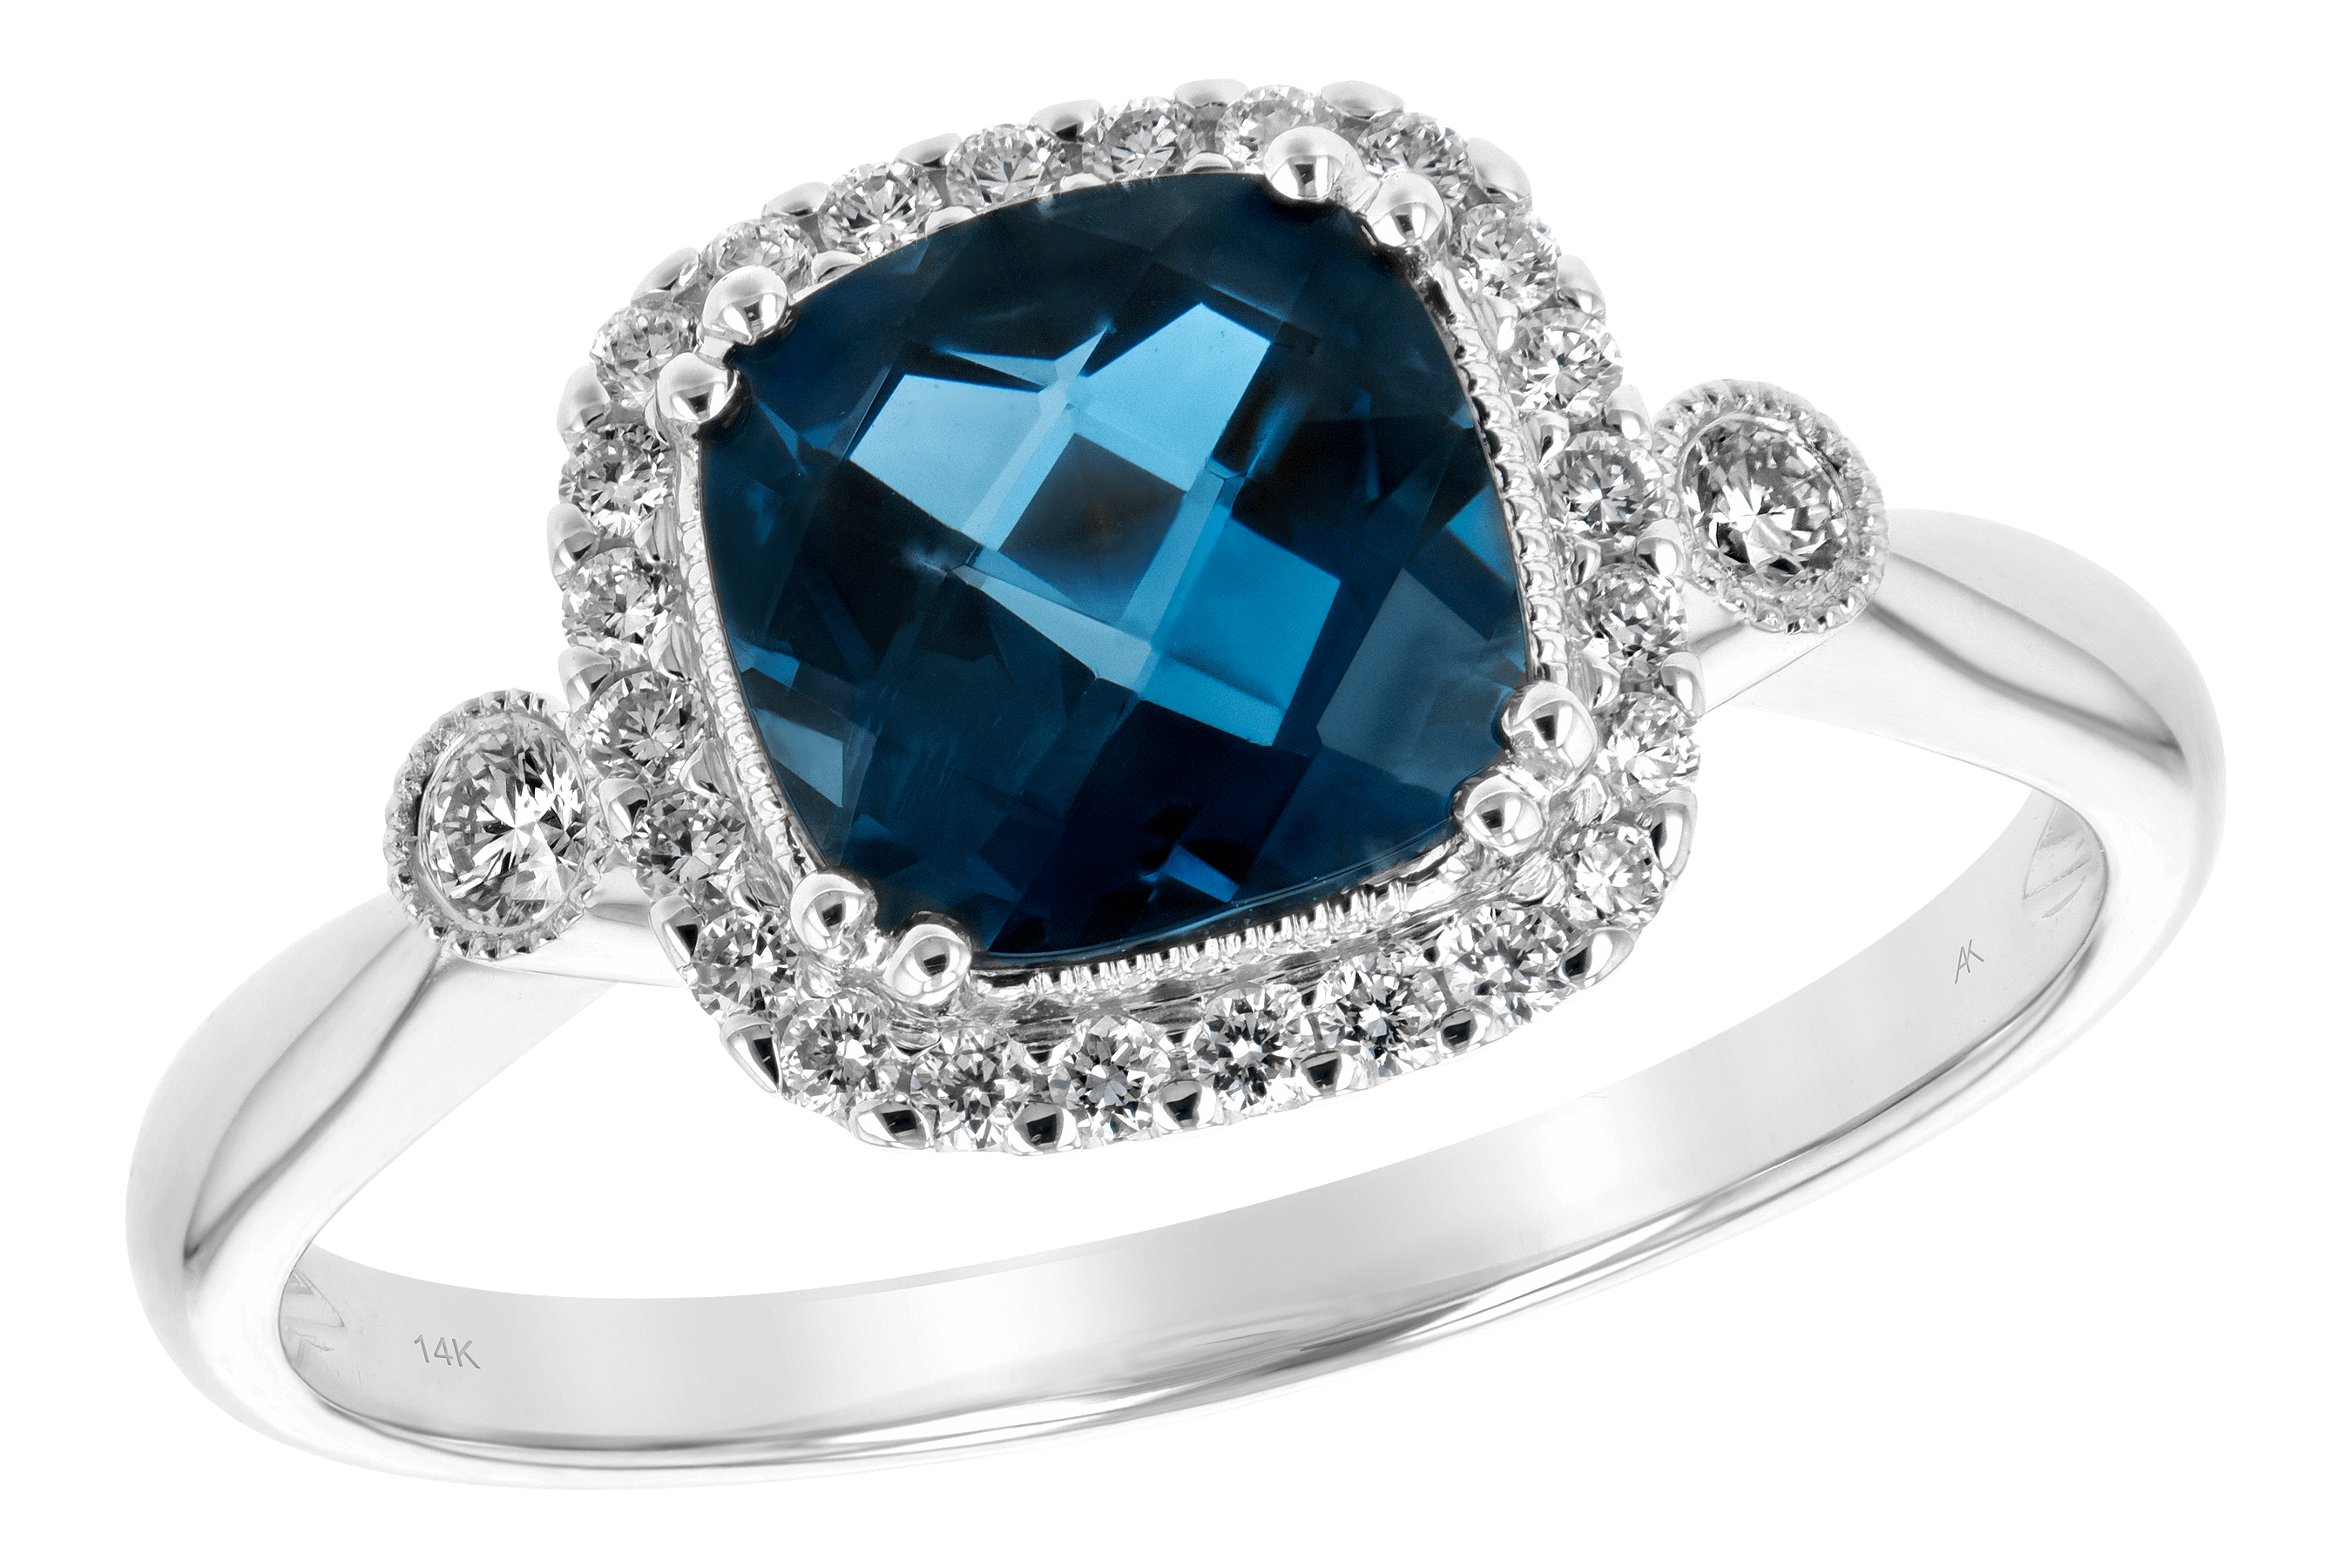 M189-19749: LDS RG 1.62 LONDON BLUE TOPAZ 1.78 TGW